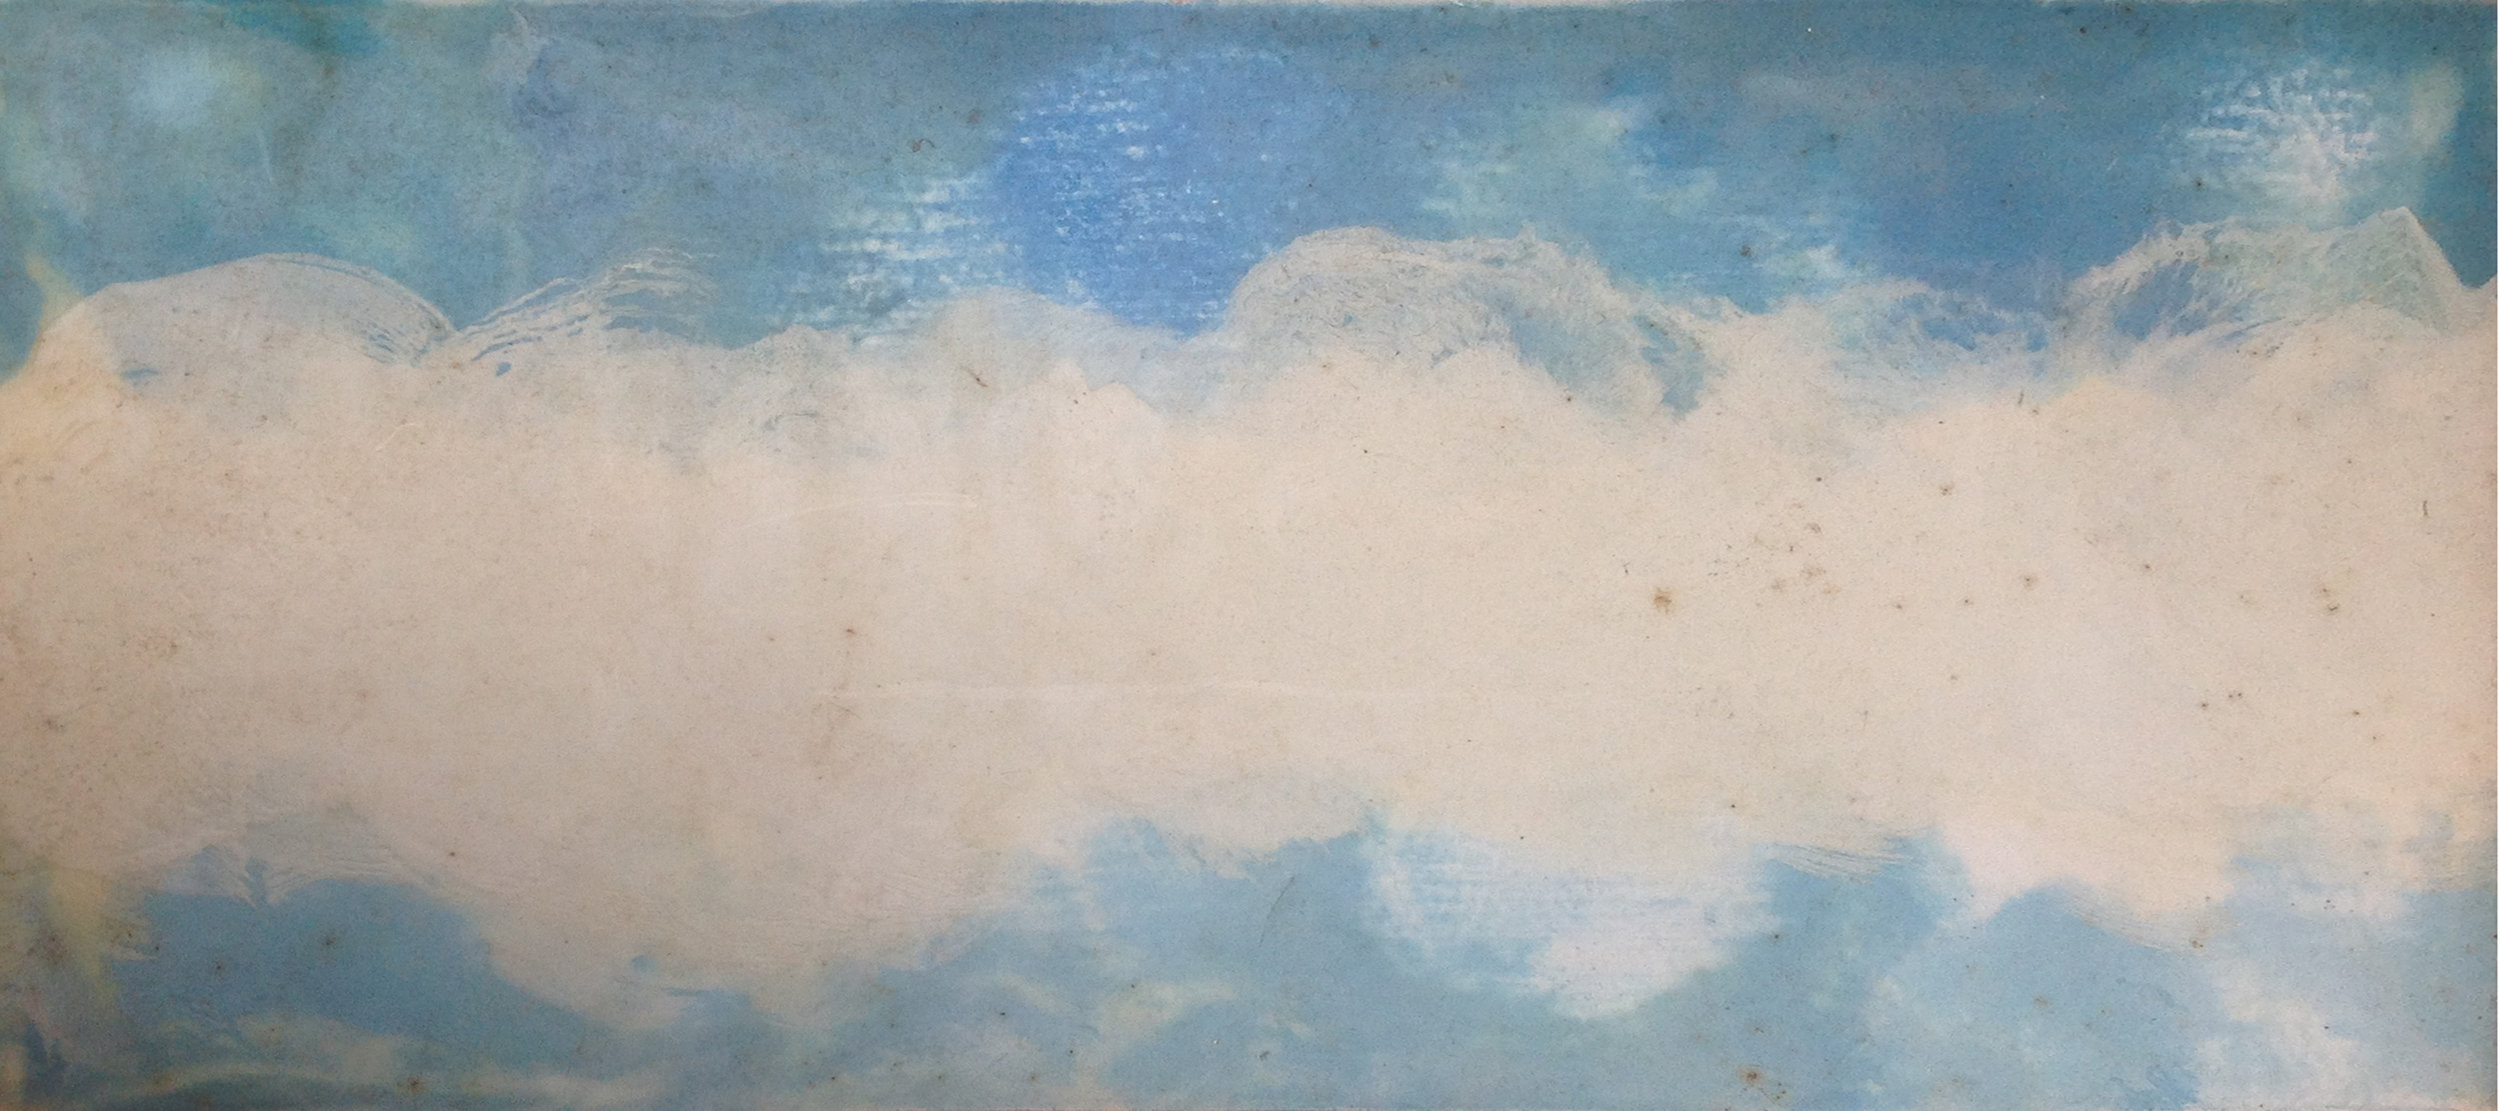 Sky - Encaustic - 6 x 12 - Collection of Abraham Reybold